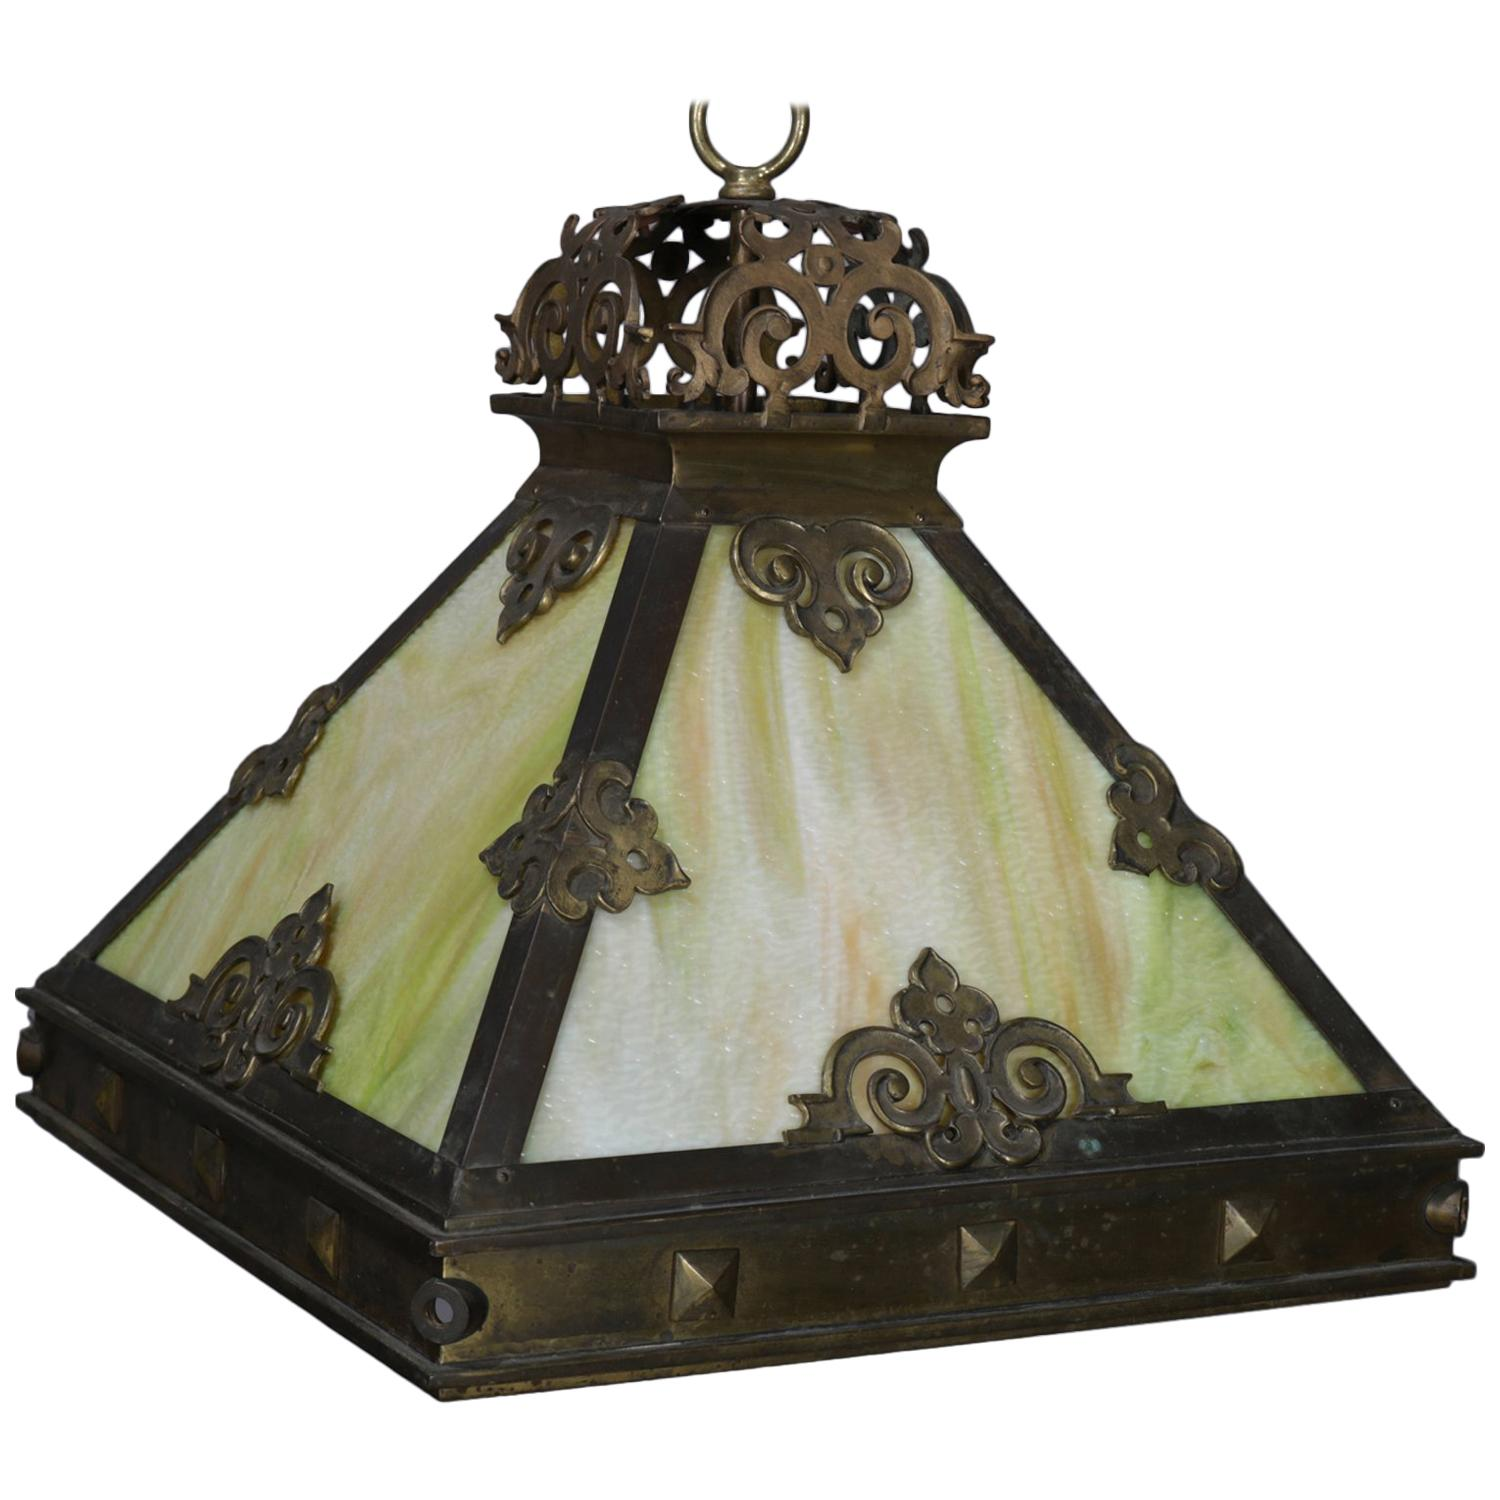 Arts crafts mission style 4 panel slag glass dome chandelier circa 1910